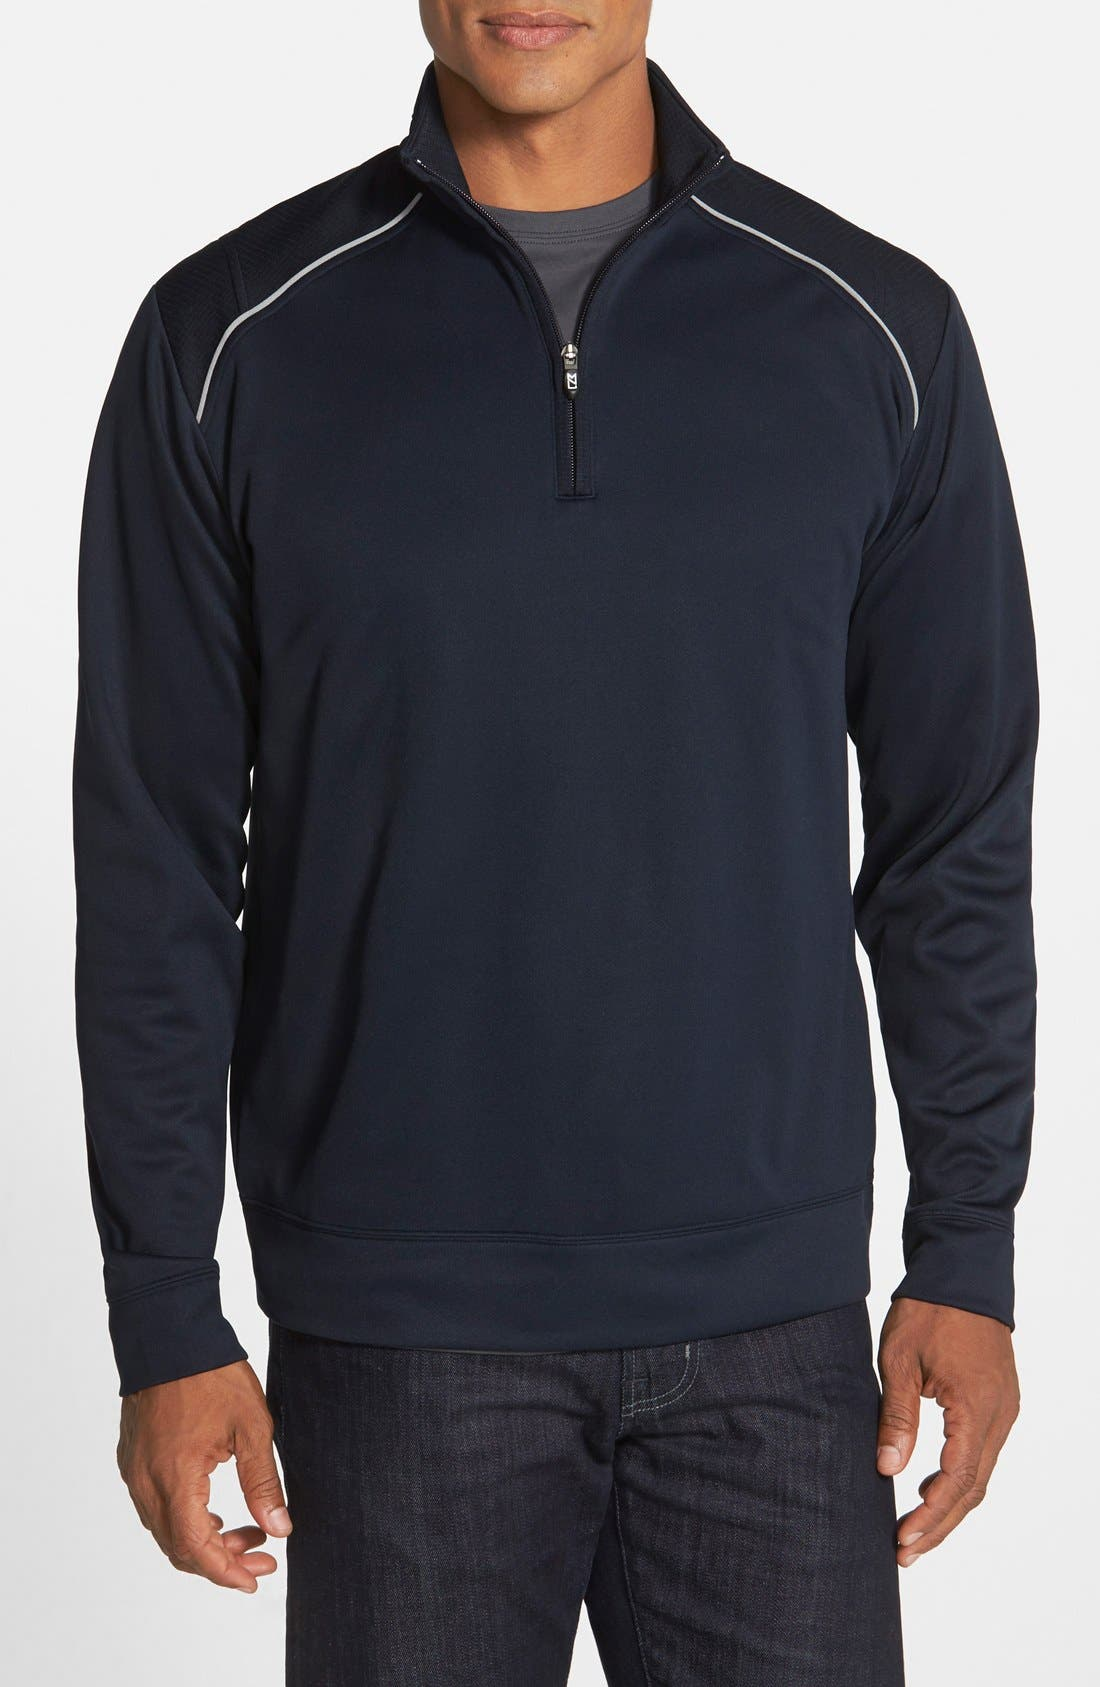 Ridge WeatherTec Wind & Water Resistant Pullover,                         Main,                         color, NAVY BLUE